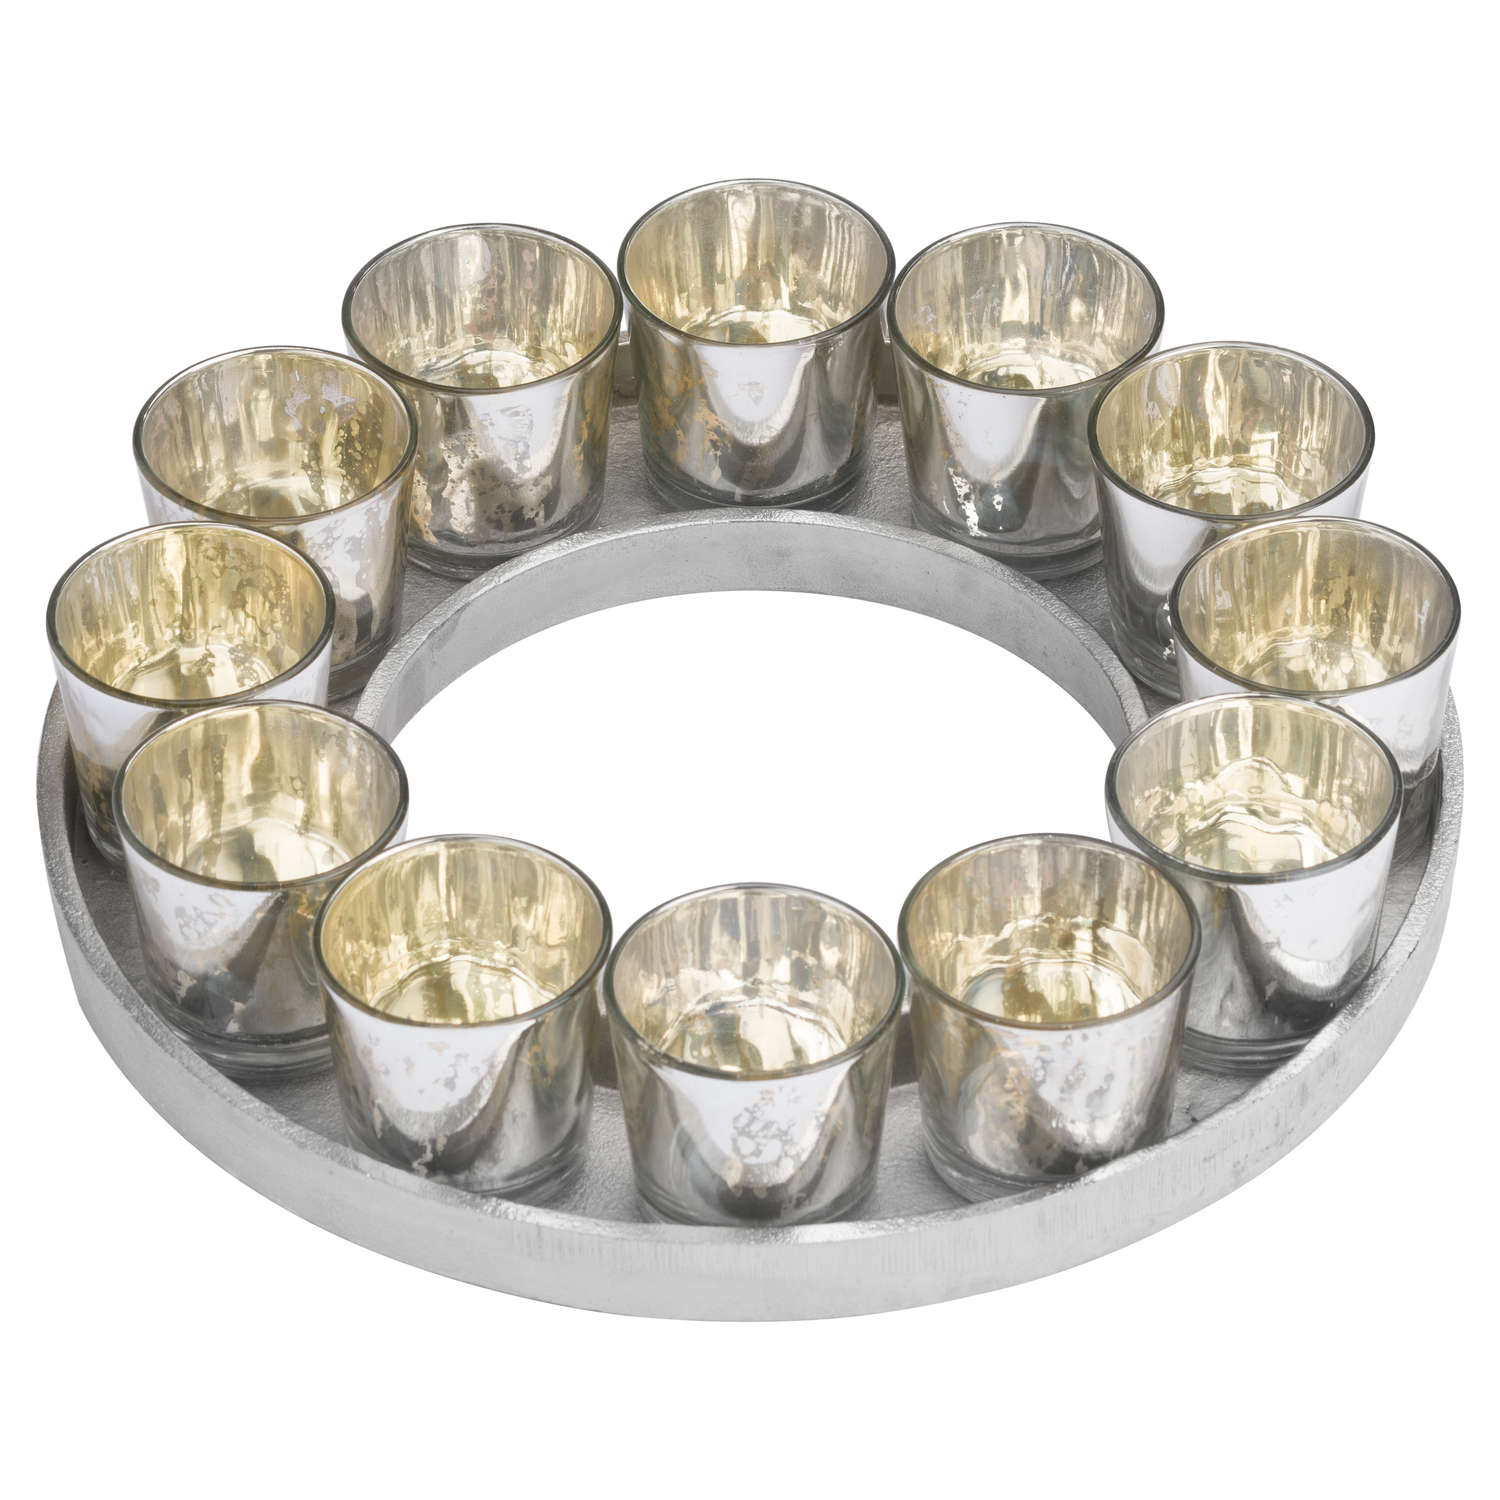 Circular Cast Aluminium Tray With Silver Glass Votives - Image 1